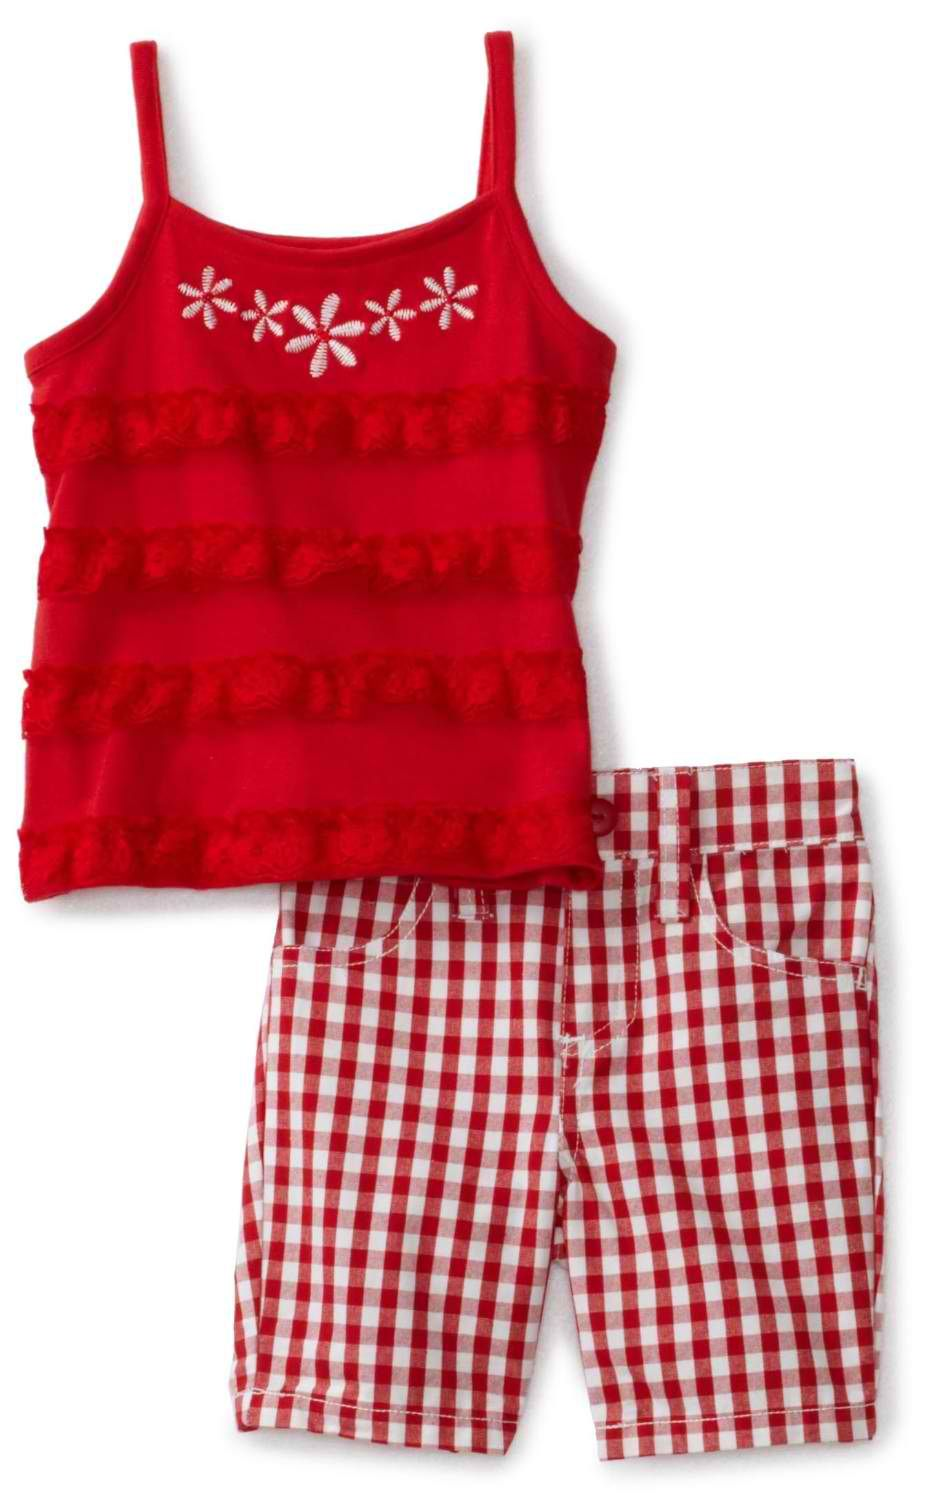 532fe1e10ab8 Nannette Baby-Girls Infant 2 Piece Chequered Bermuda Set  14.25 ...